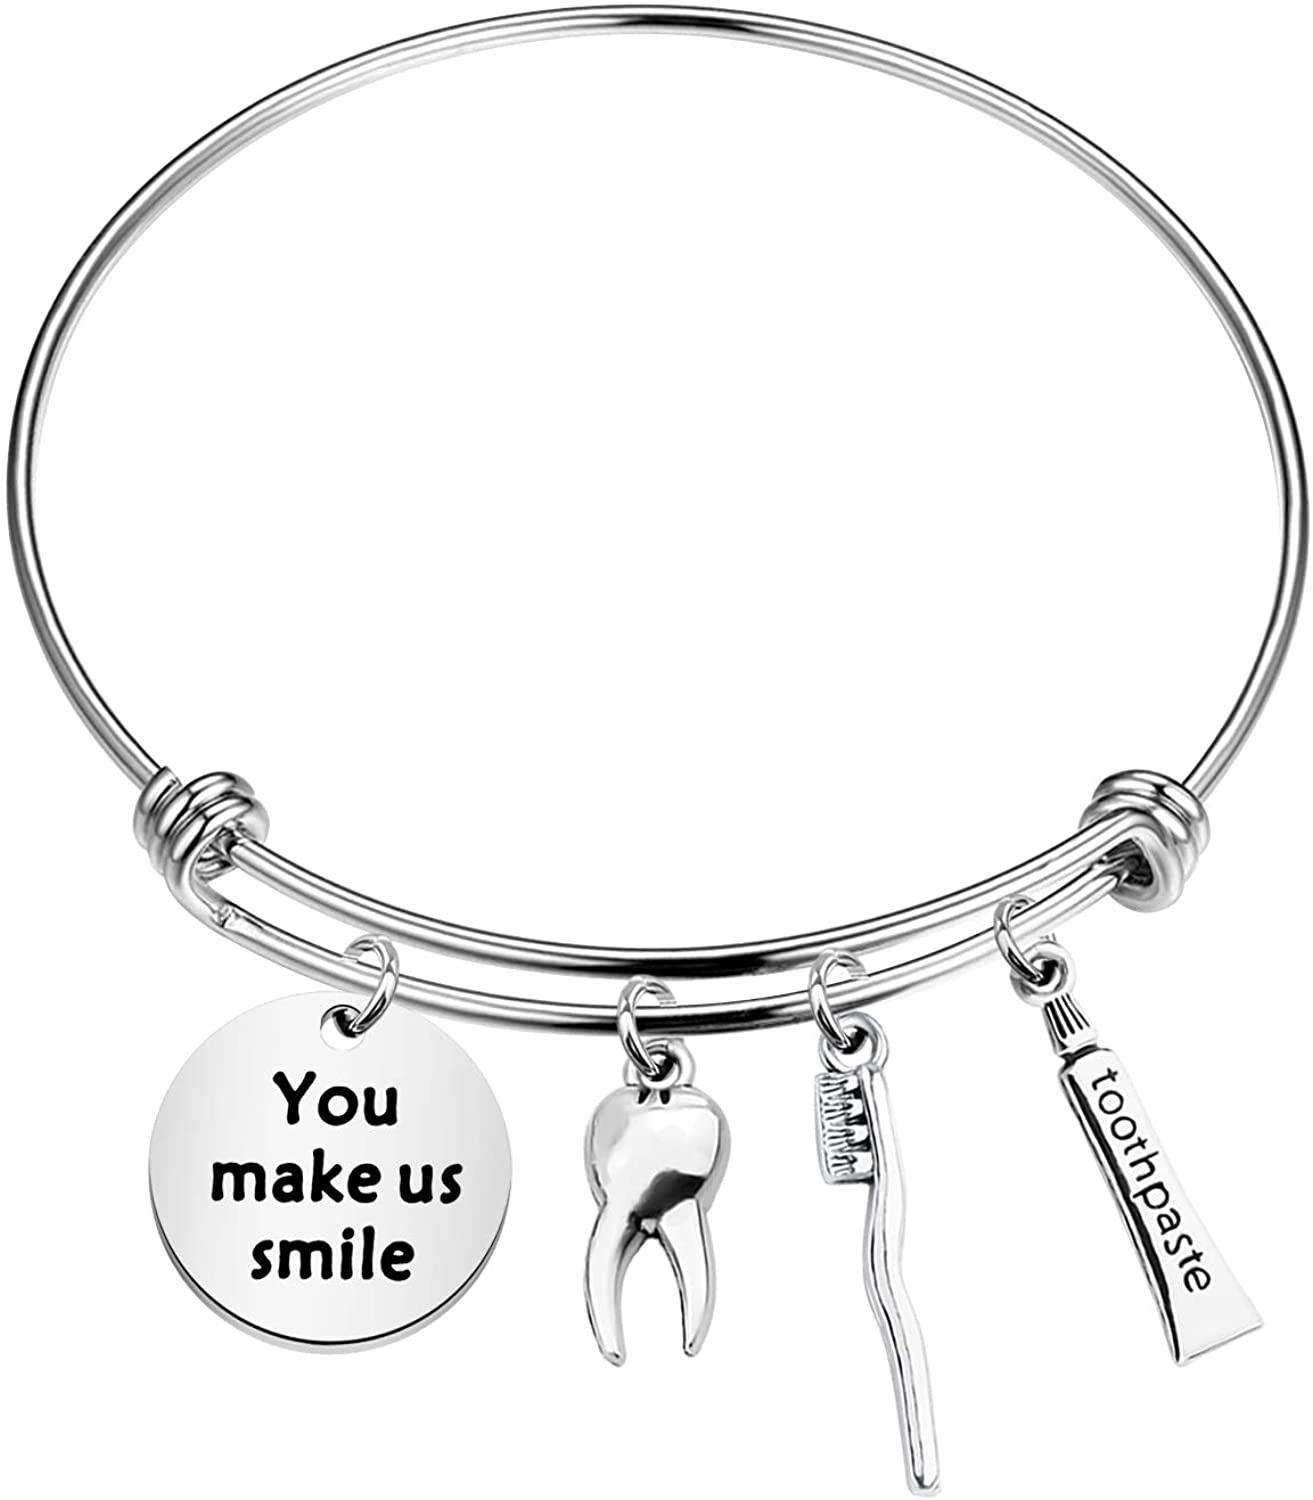 HOLLP Dentist Appreciation Gift Dental Hygienist Jewelry You Make Us Smile Bracelet with Tooth Toothpaste Toothbrush Charm